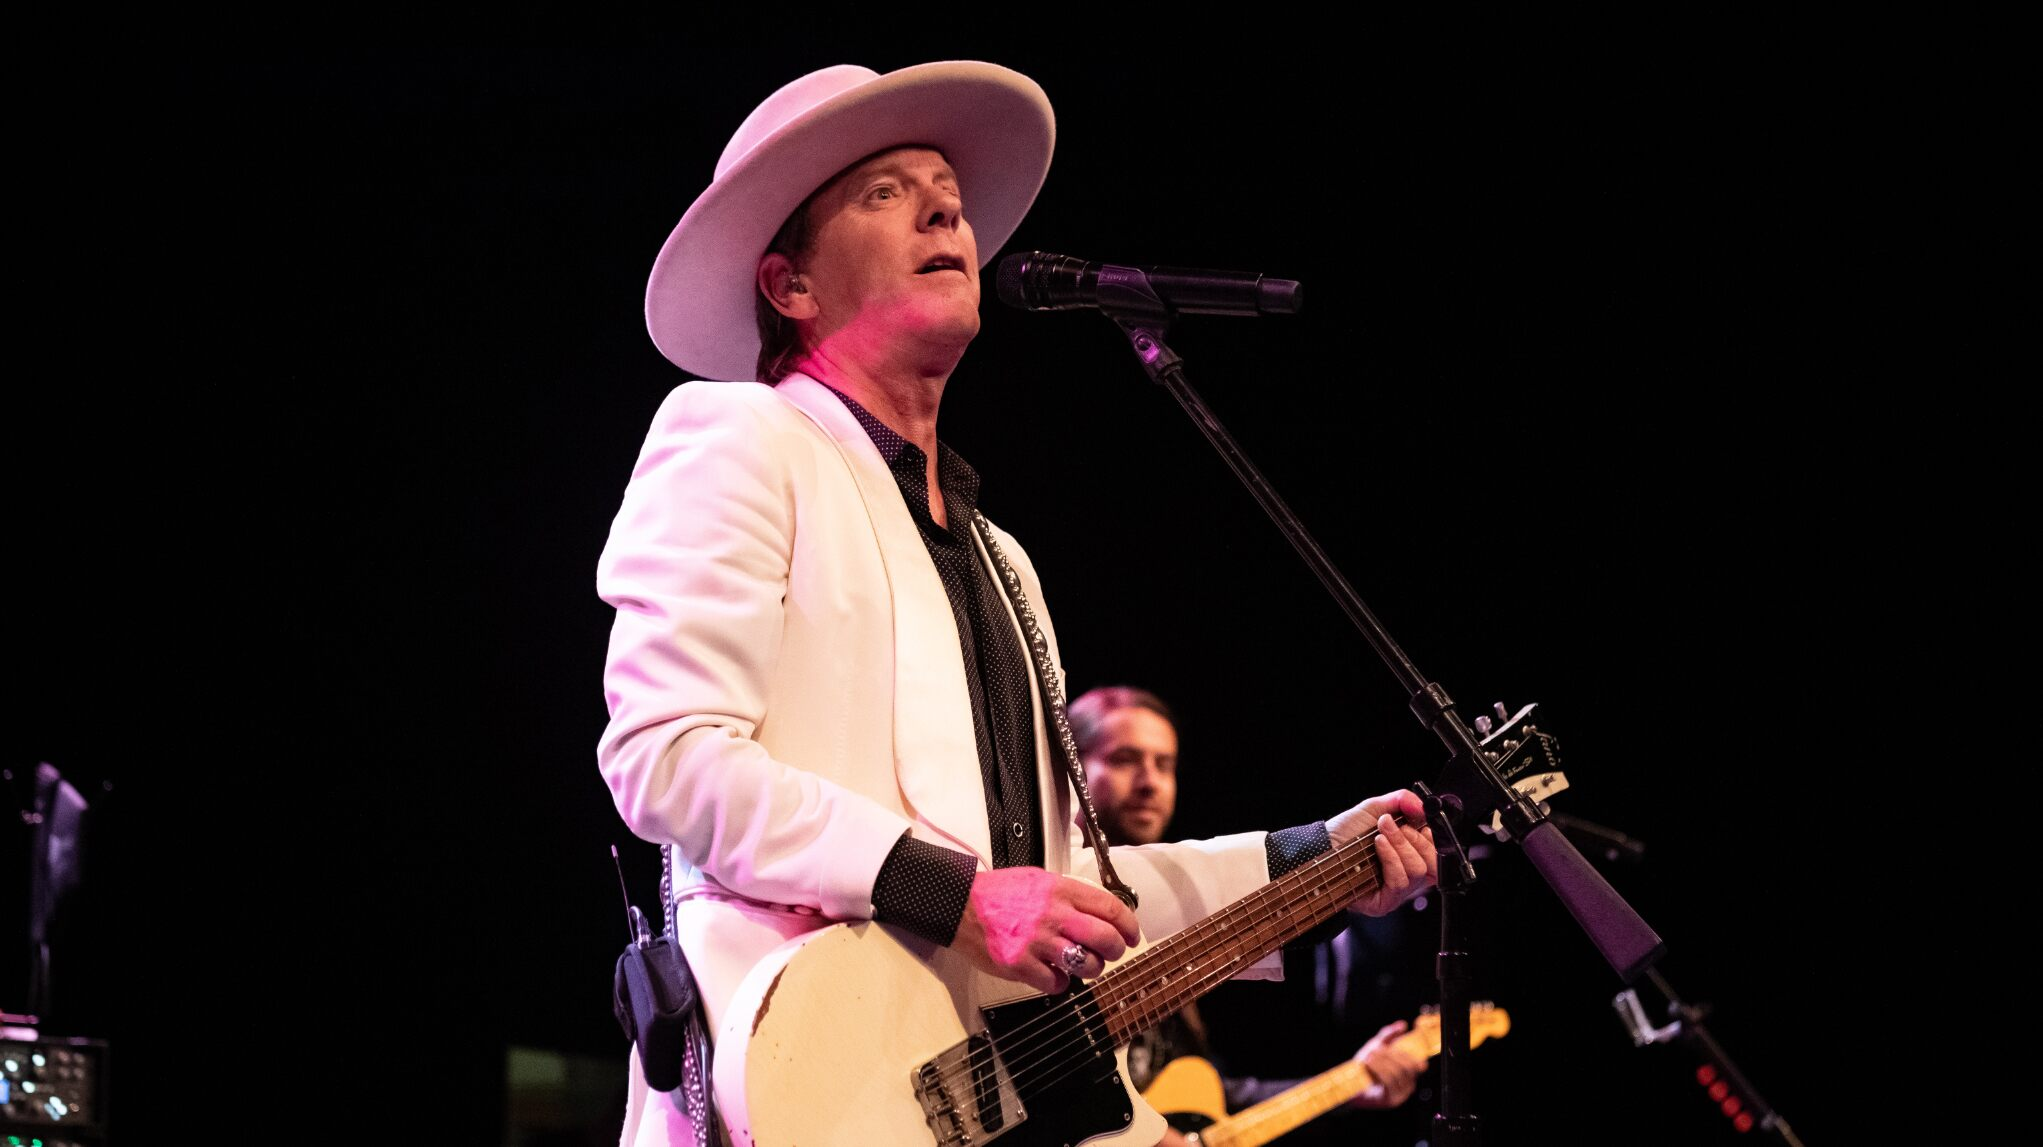 Kiefer Sutherland 'seriously injured' after falling in Europe